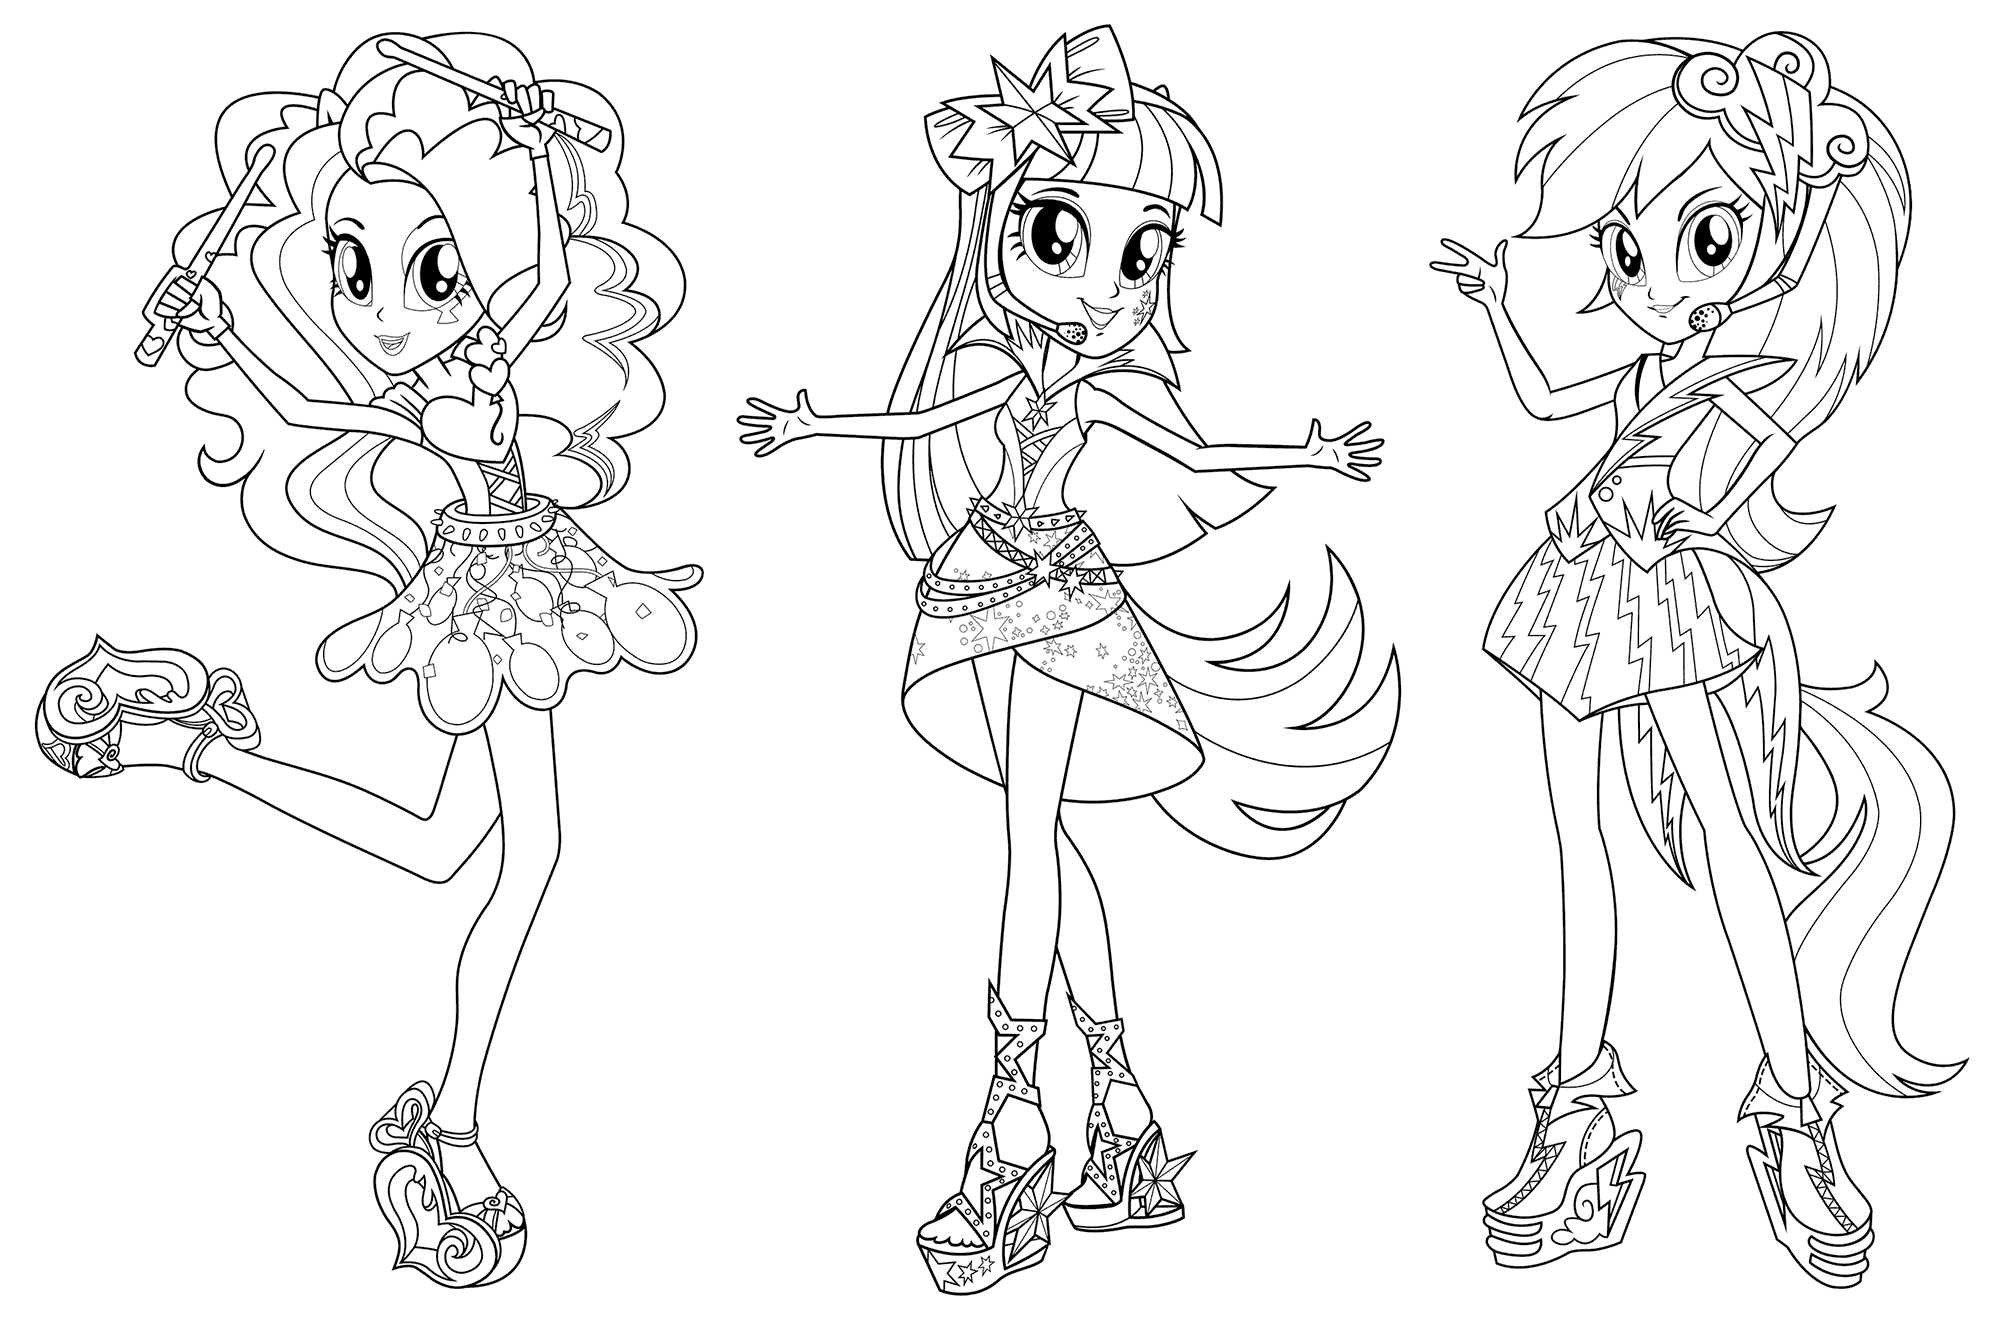 Equestria Girls Coloring Pages Magnificent My Equestria Girl Rainbow Rocks Coloring Page  My Little Pony Review